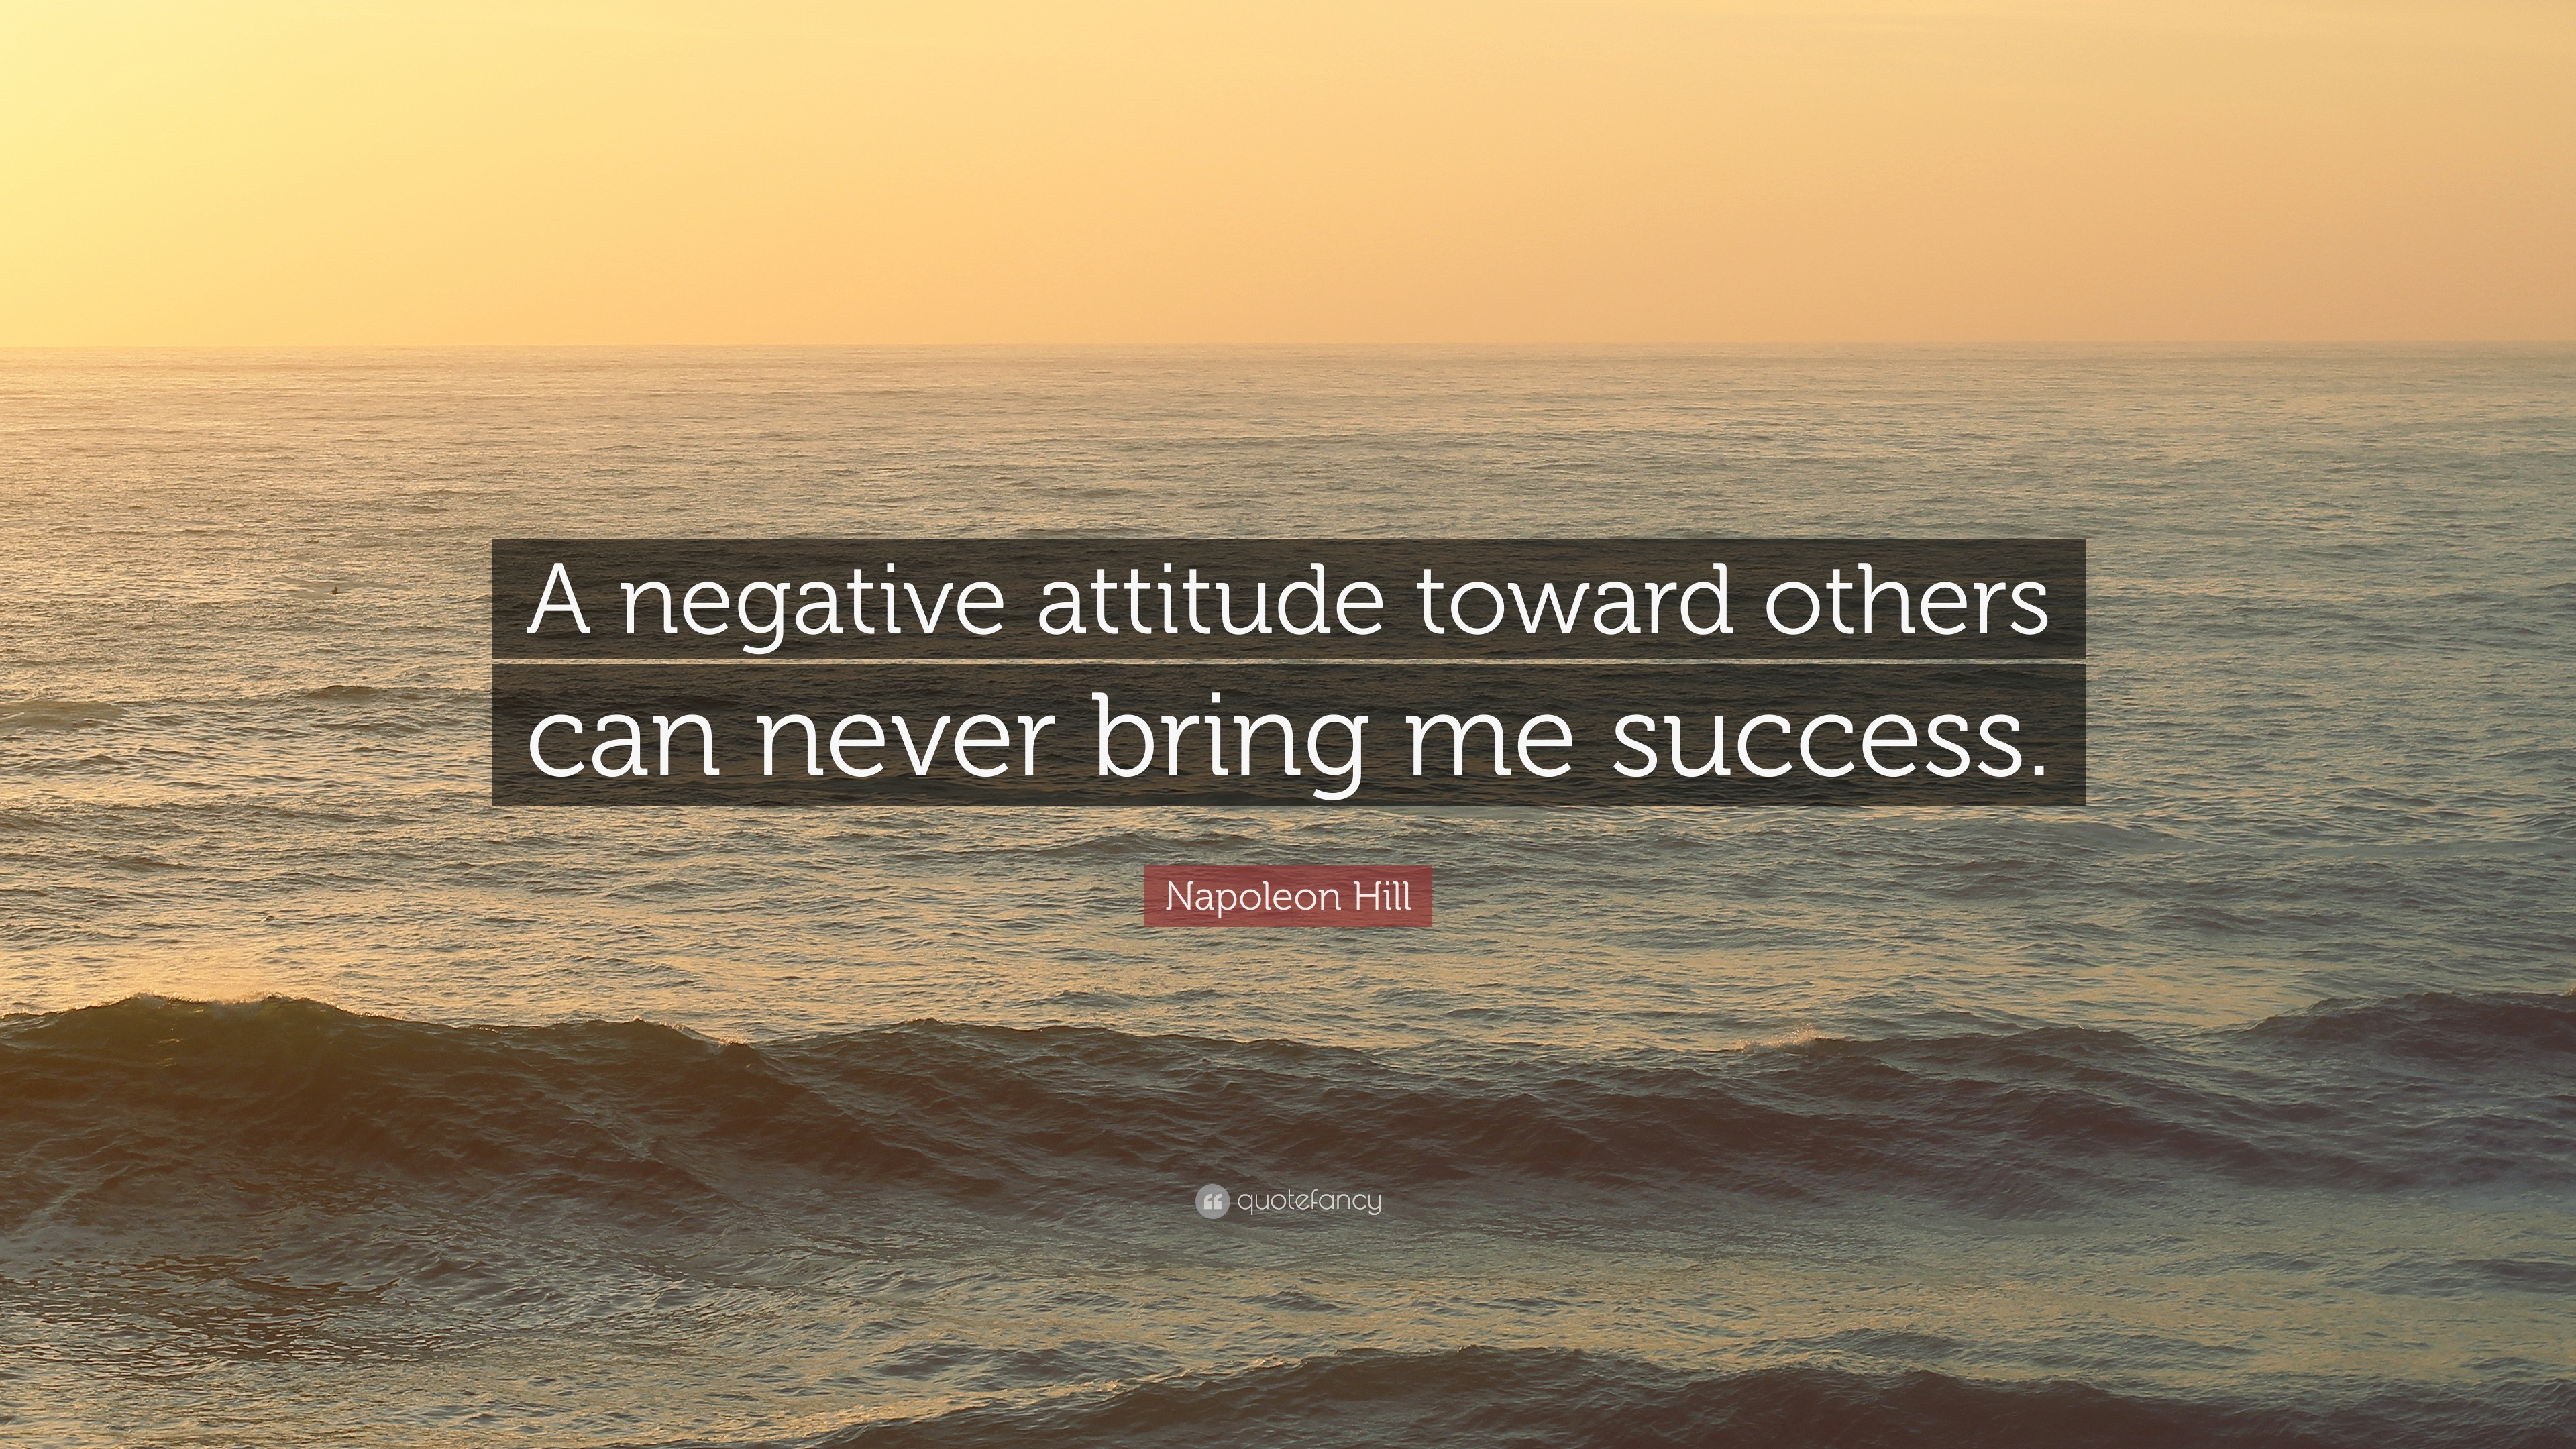 Napoleon Hill Quote A Negative Attitude Toward Others Can Never Bring Me Success 12 Wallpapers Quotefancy